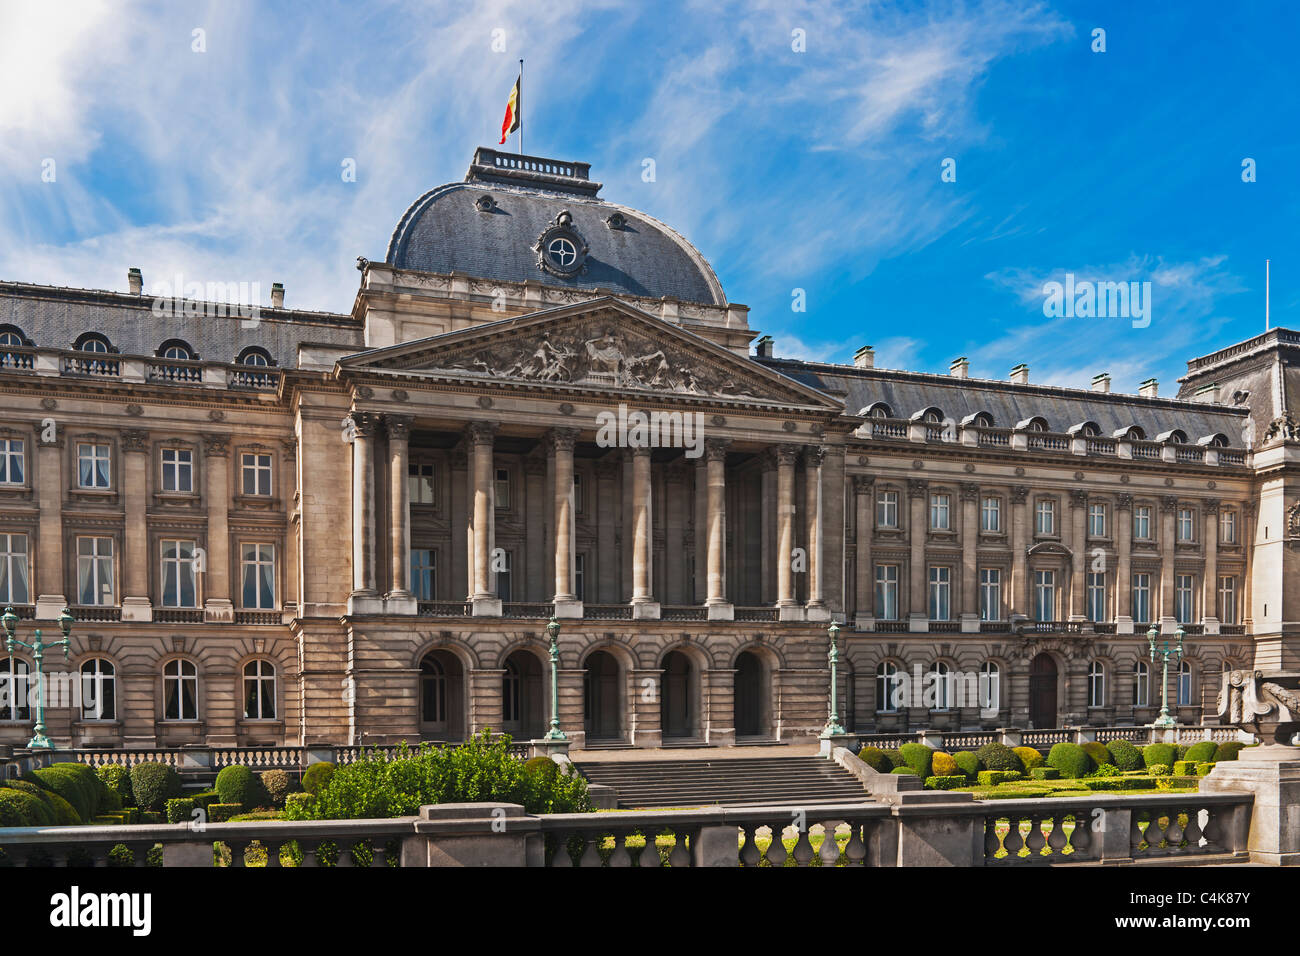 The Royal Palace, is the official palace of the King of the Belgians, Brussels, Belgium, Europe - Stock Image